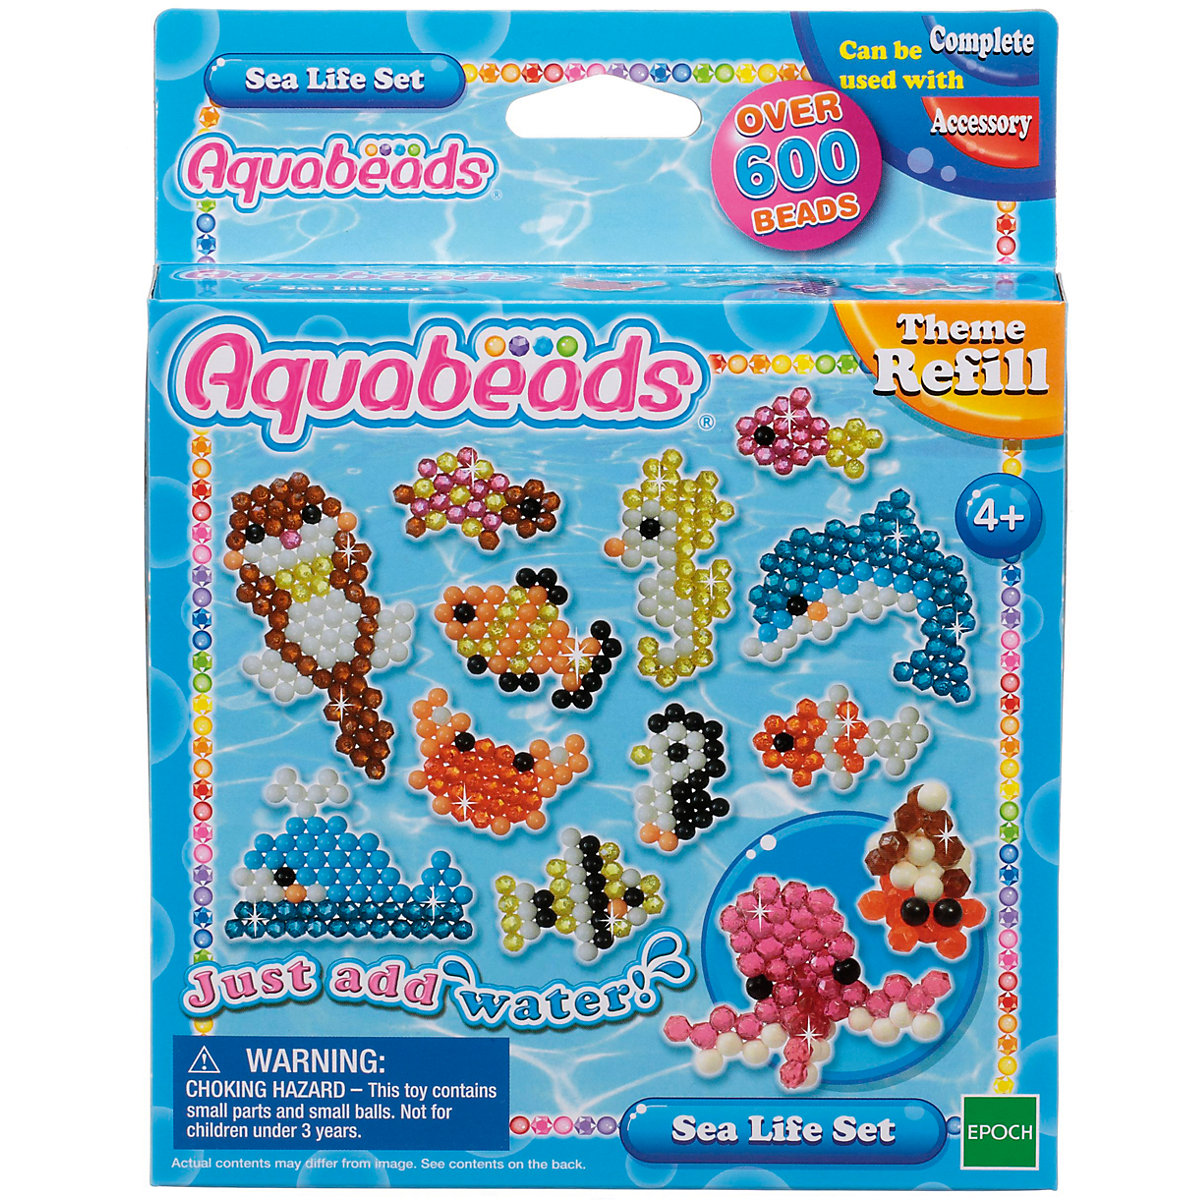 Aquabeads Beads Toys 7236010 Creativity Needlework For Children Set Kids Toy Hobbis Arts Crafts DIY